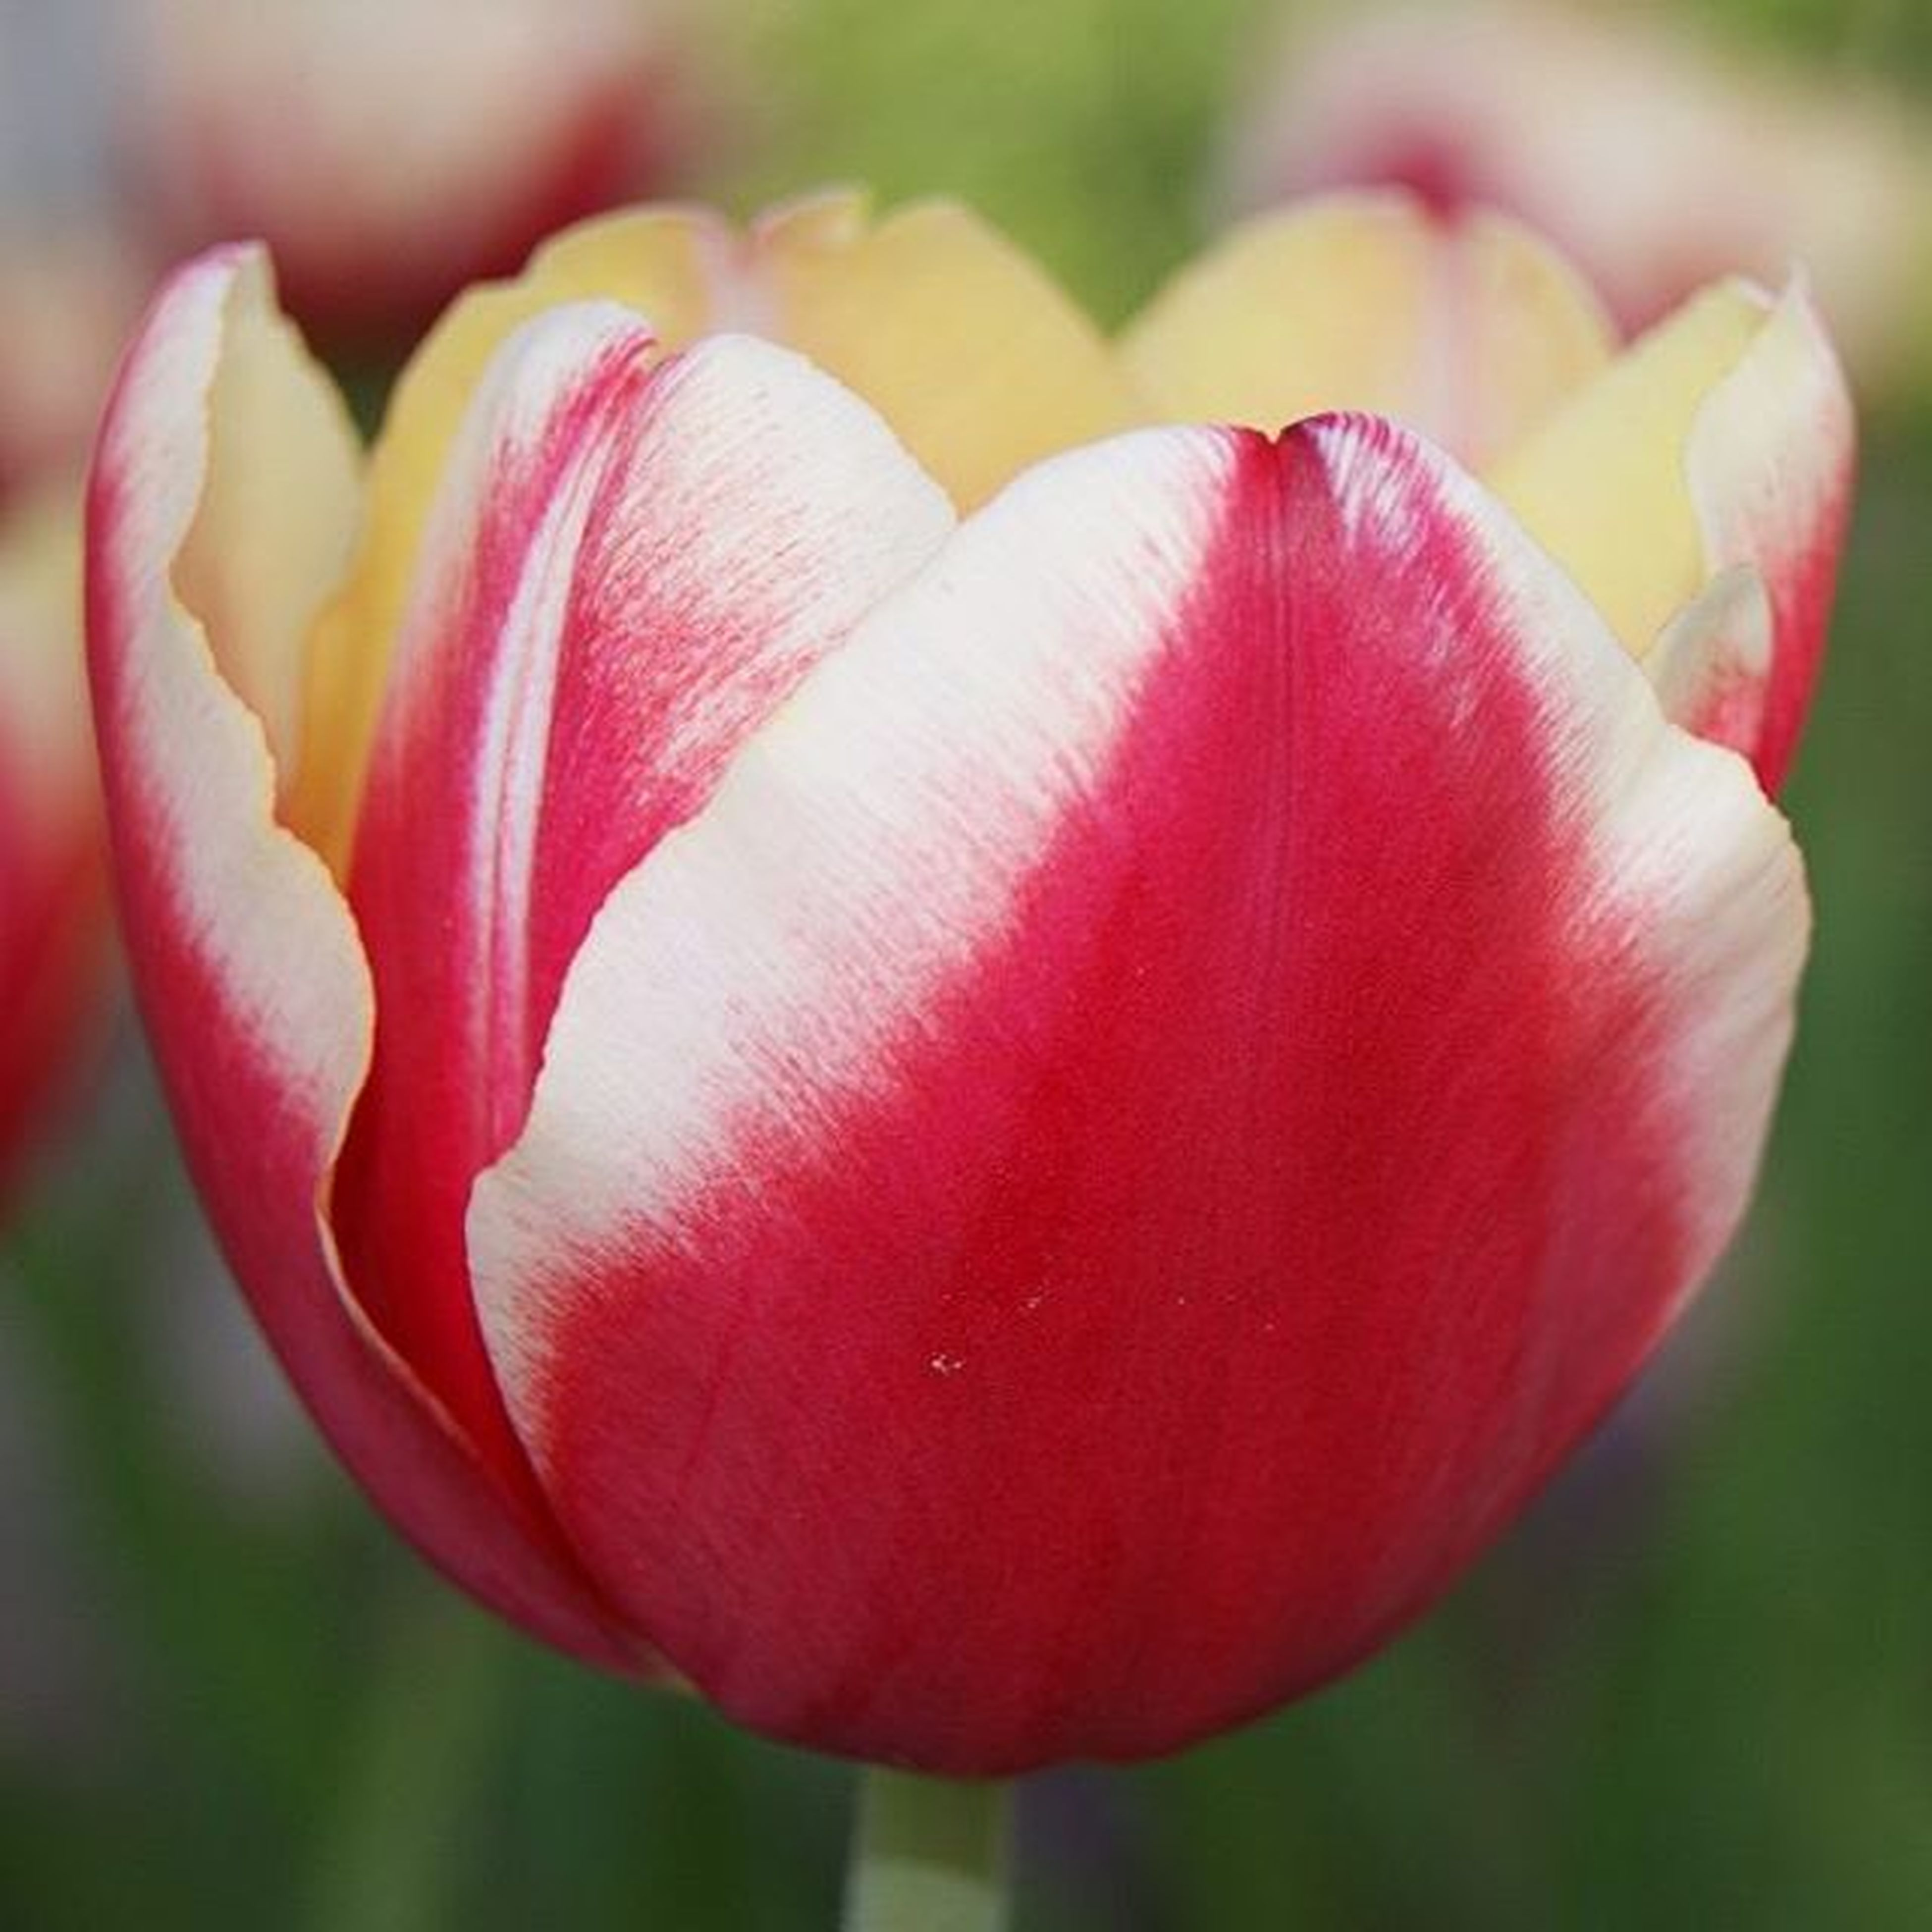 flower, petal, freshness, flower head, fragility, beauty in nature, growth, close-up, tulip, pink color, focus on foreground, nature, single flower, blooming, plant, in bloom, blossom, selective focus, red, stem